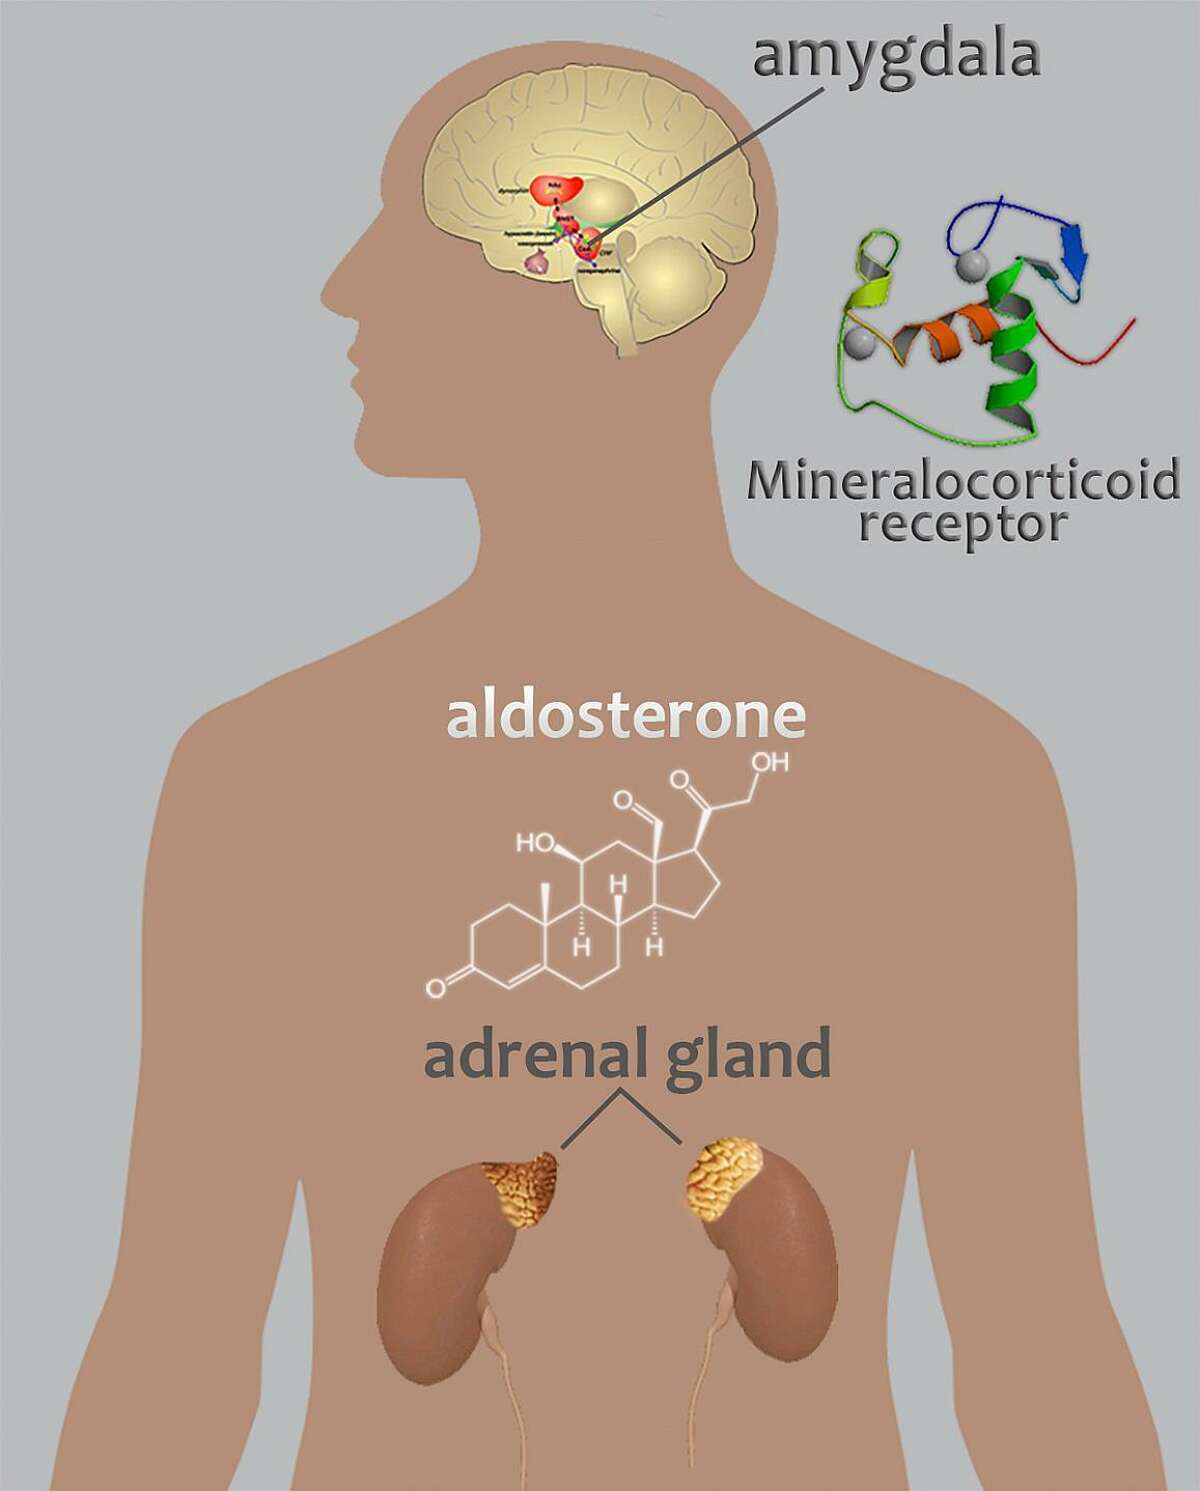 A new study led by scientists at the National Institute on Alcohol Abuse and Alcoholism, part of the National Institutes of Health shows that aldosterone, a hormone produced in the adrenal glands, may contribute to alcohol use disorders. Image courtesy of the National Institutes of Health.